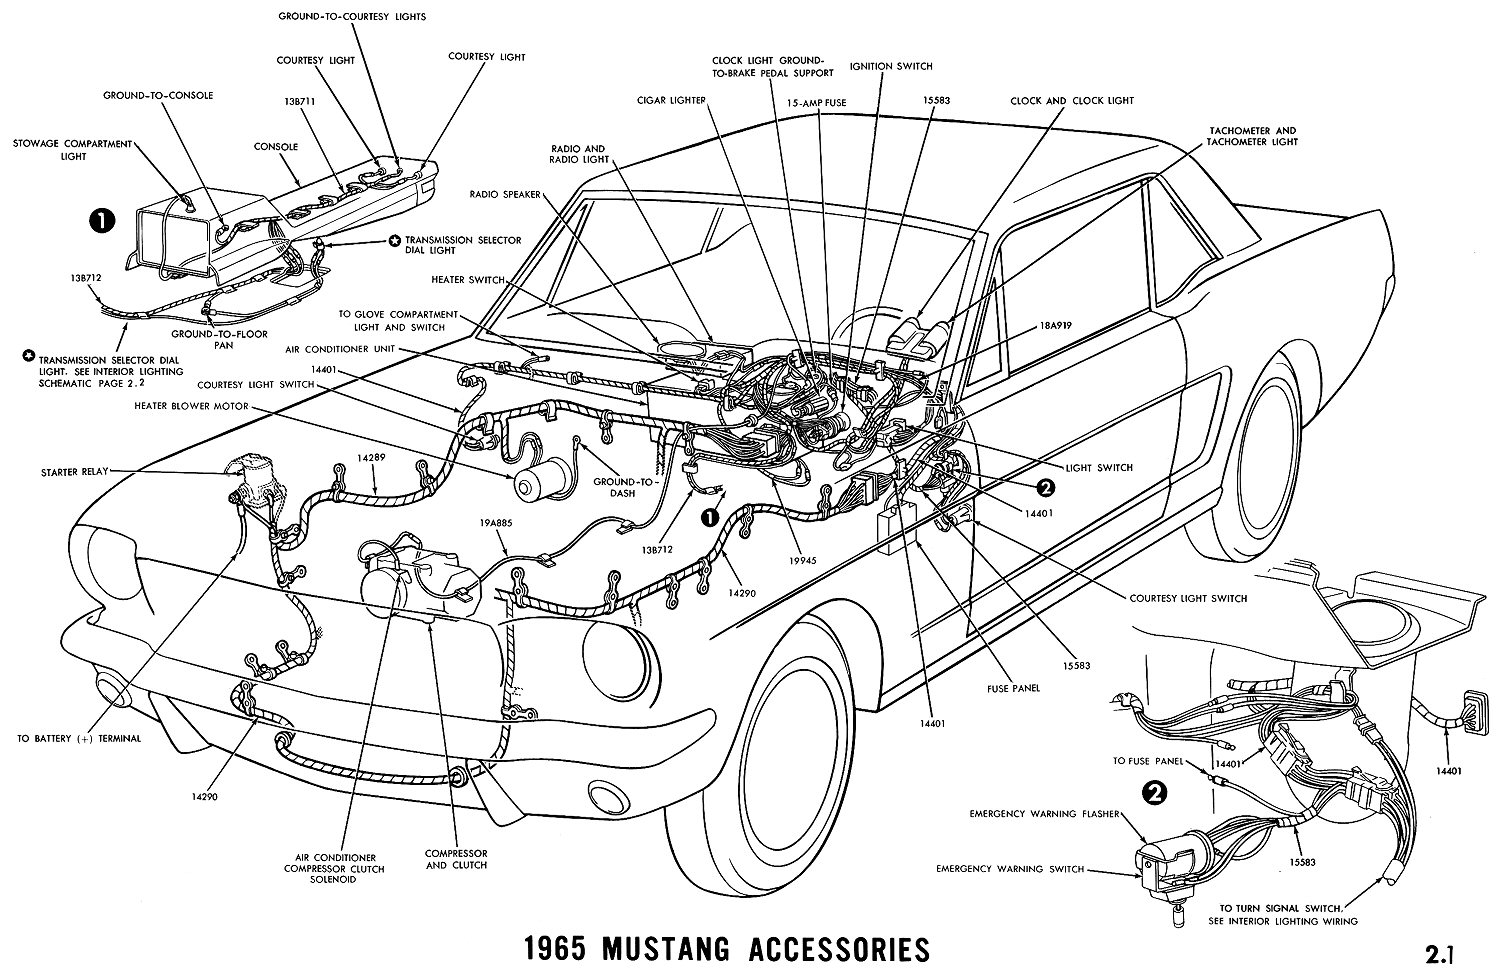 65 mustang accesories 1965 mustang accesories diagram 68 mustang fuse box at readyjetset.co